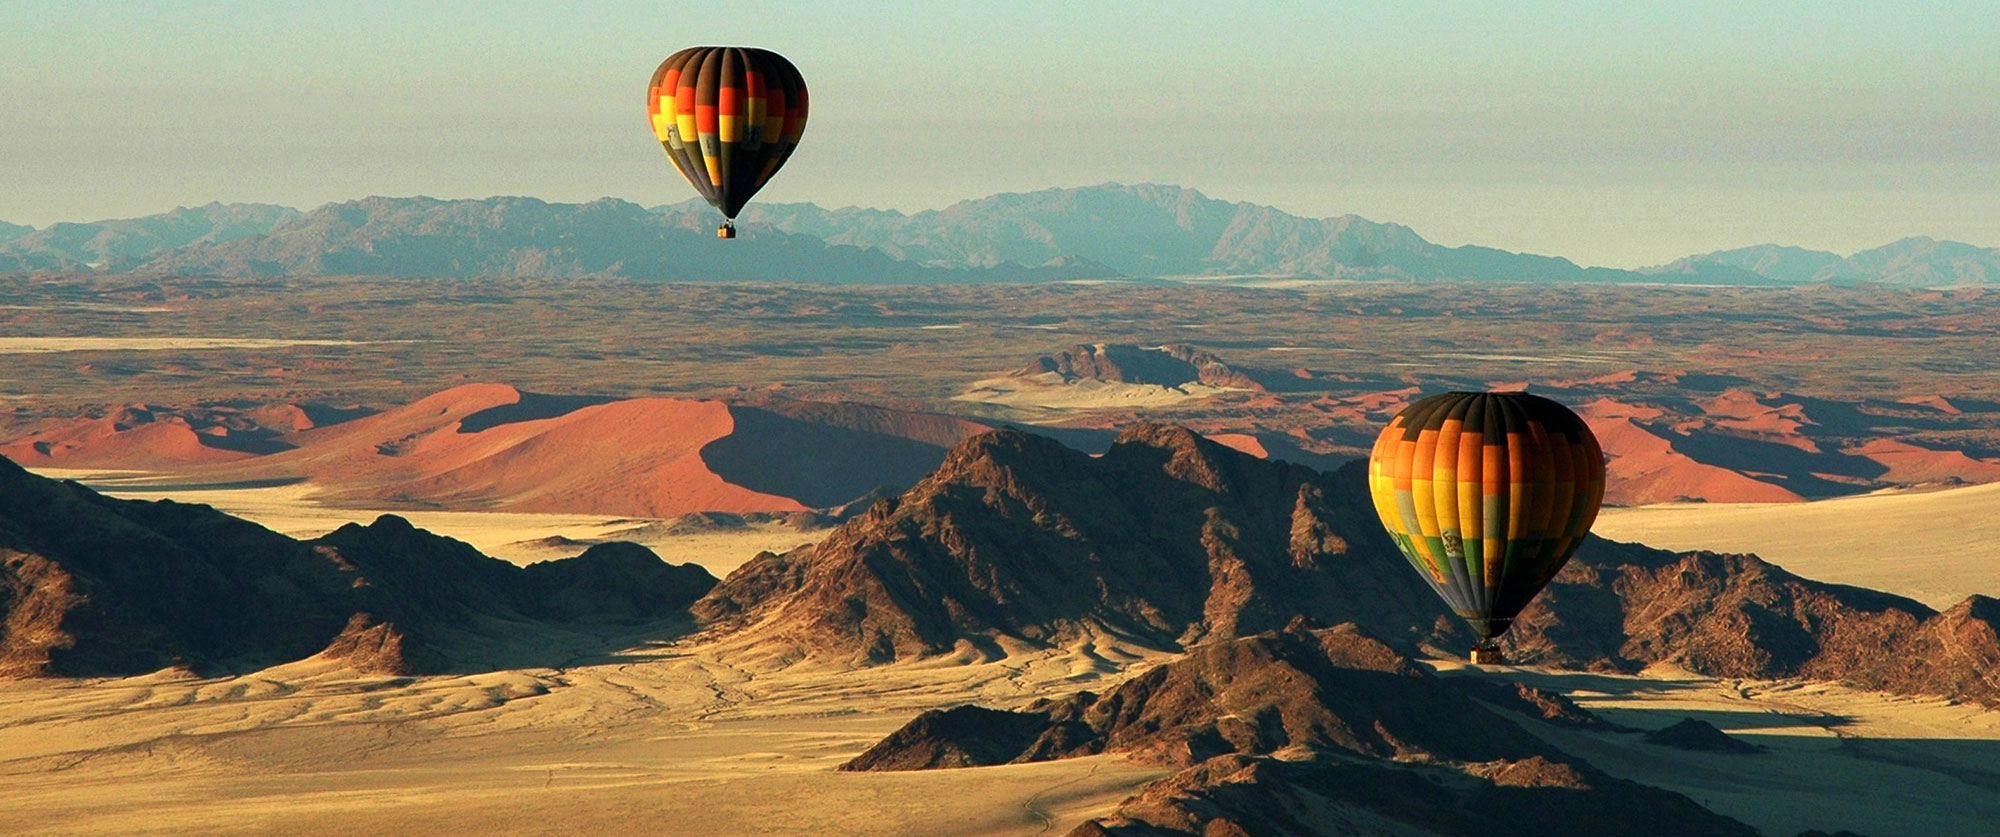 Namibia - Africa - Travel Specialist - Handcrafted - Vacation